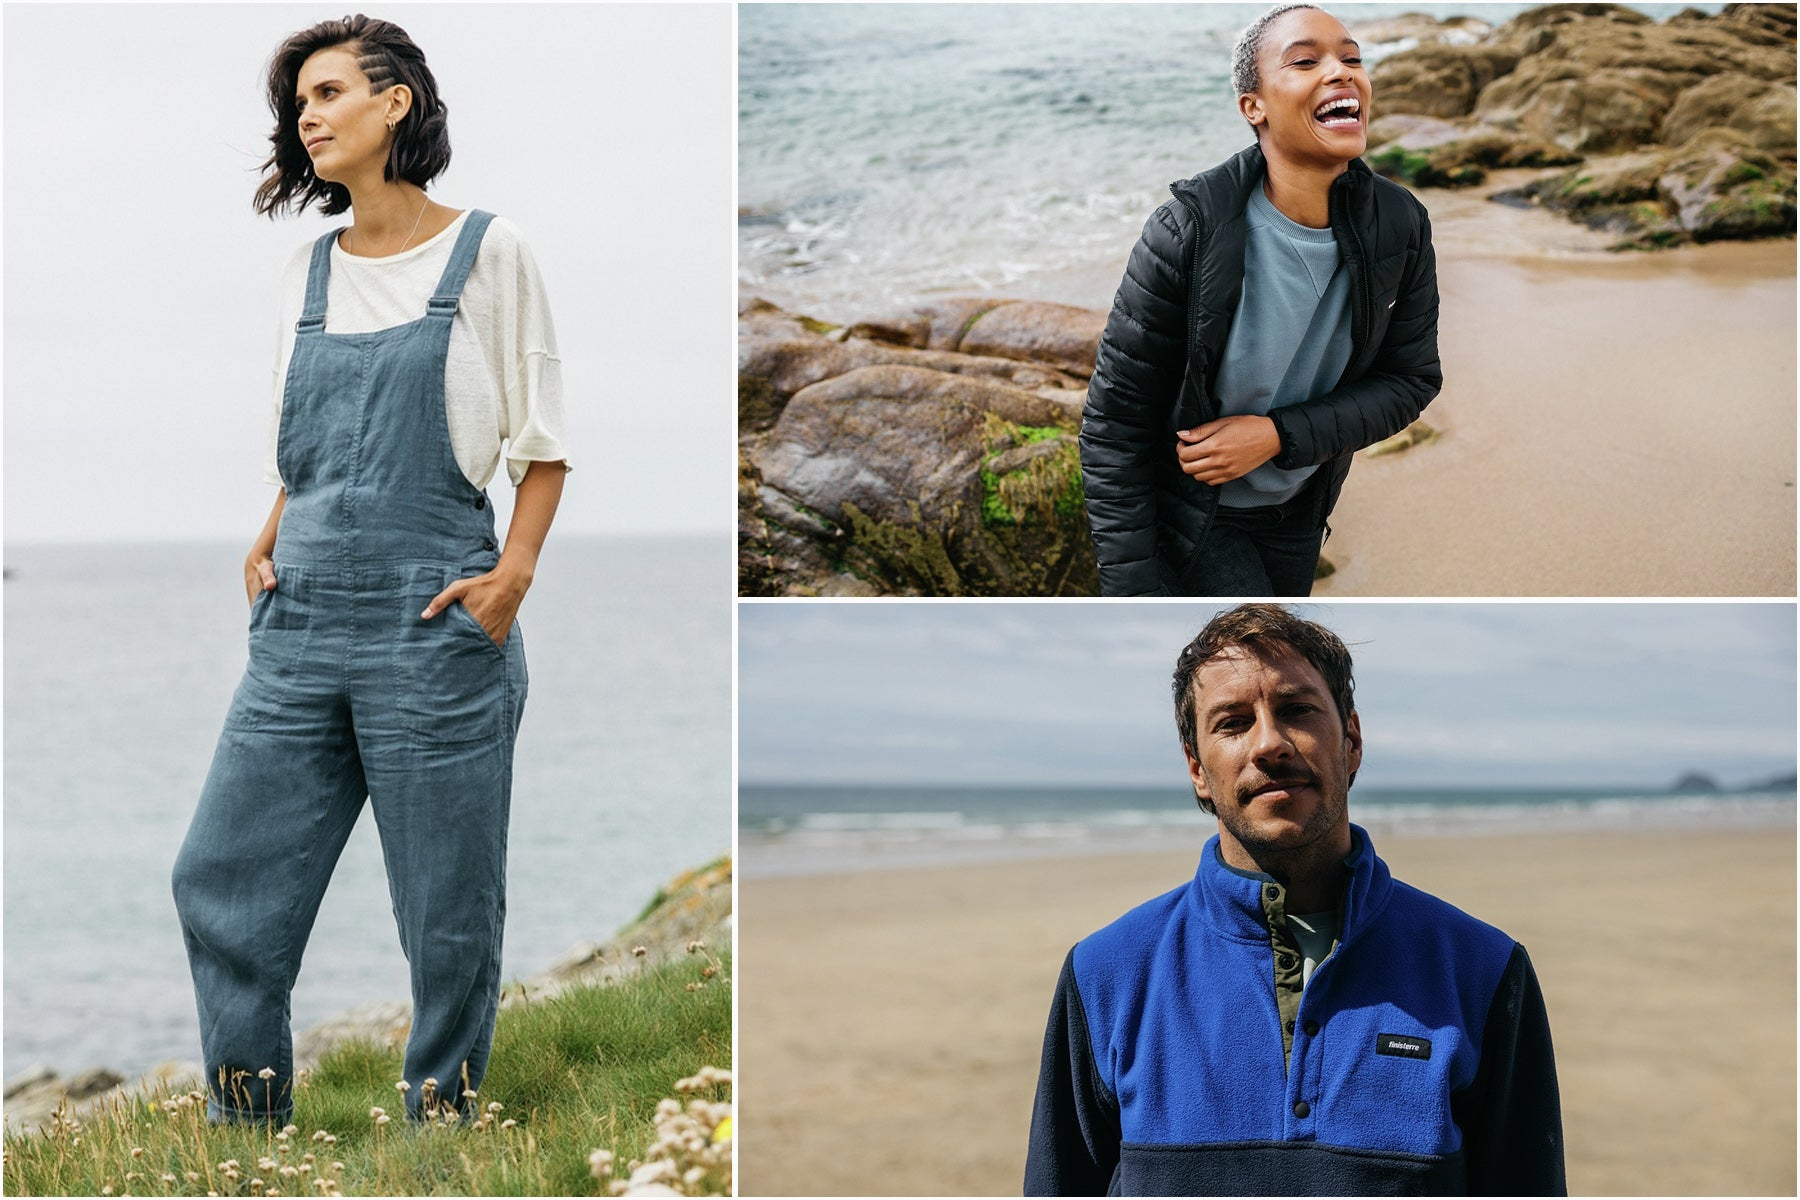 Split image of man wearing Finisterre fleece and women in dungarees and insulated jacket by Finsiterre